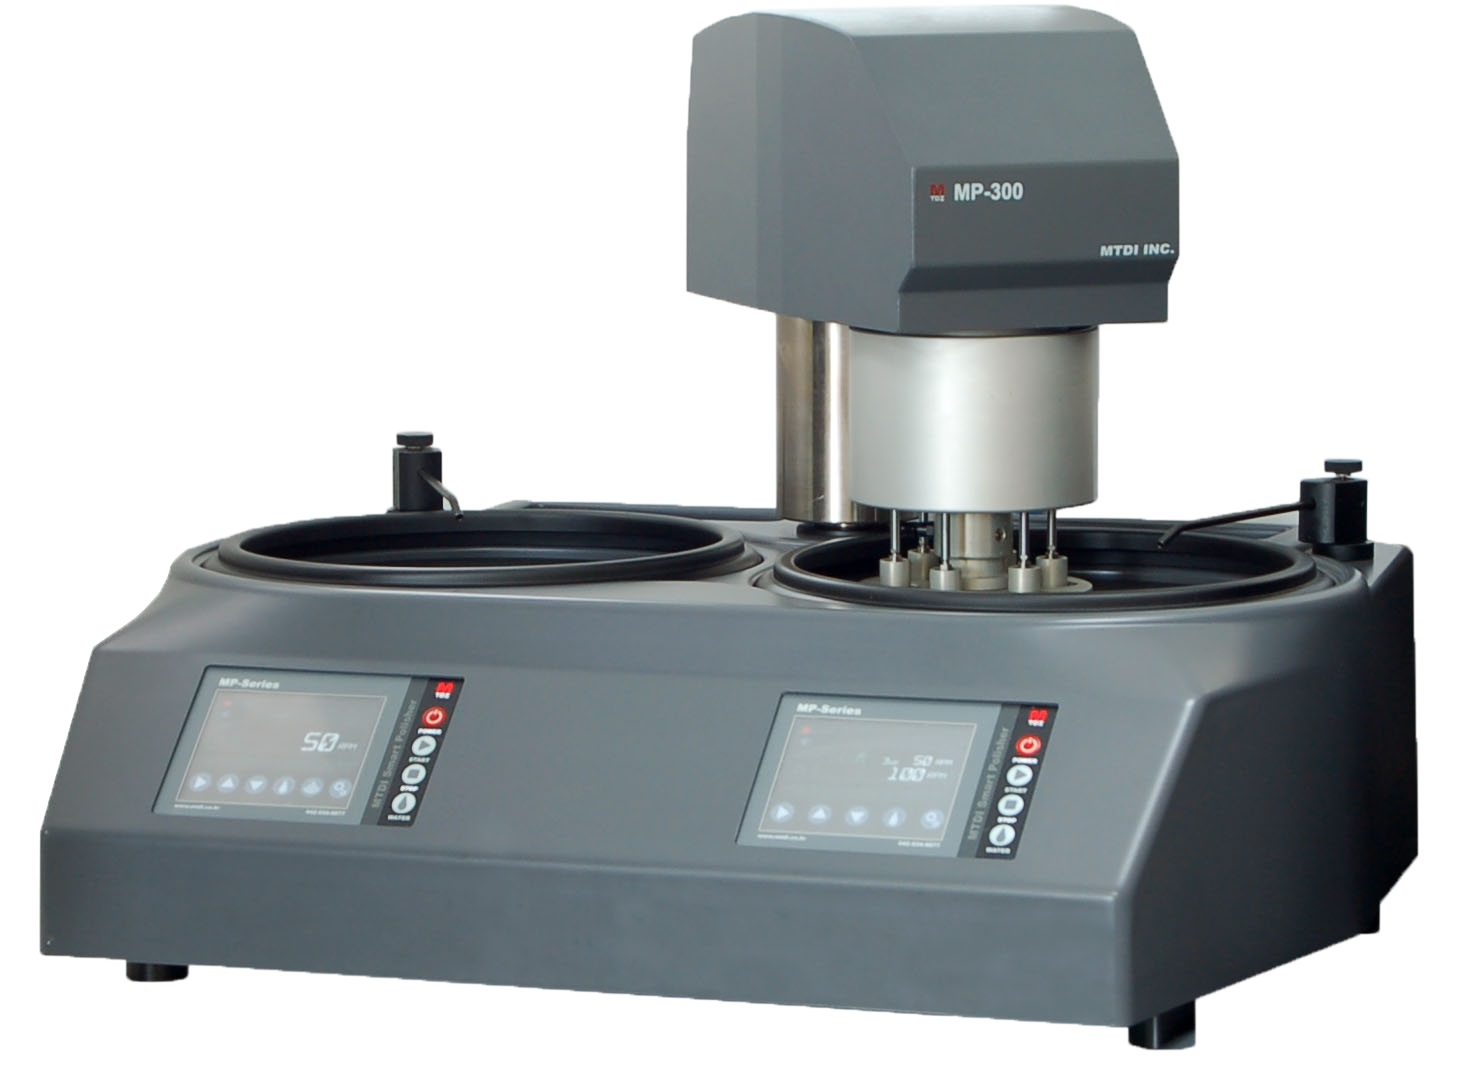 Touch screen controlled Automatic Grinder/Polisher